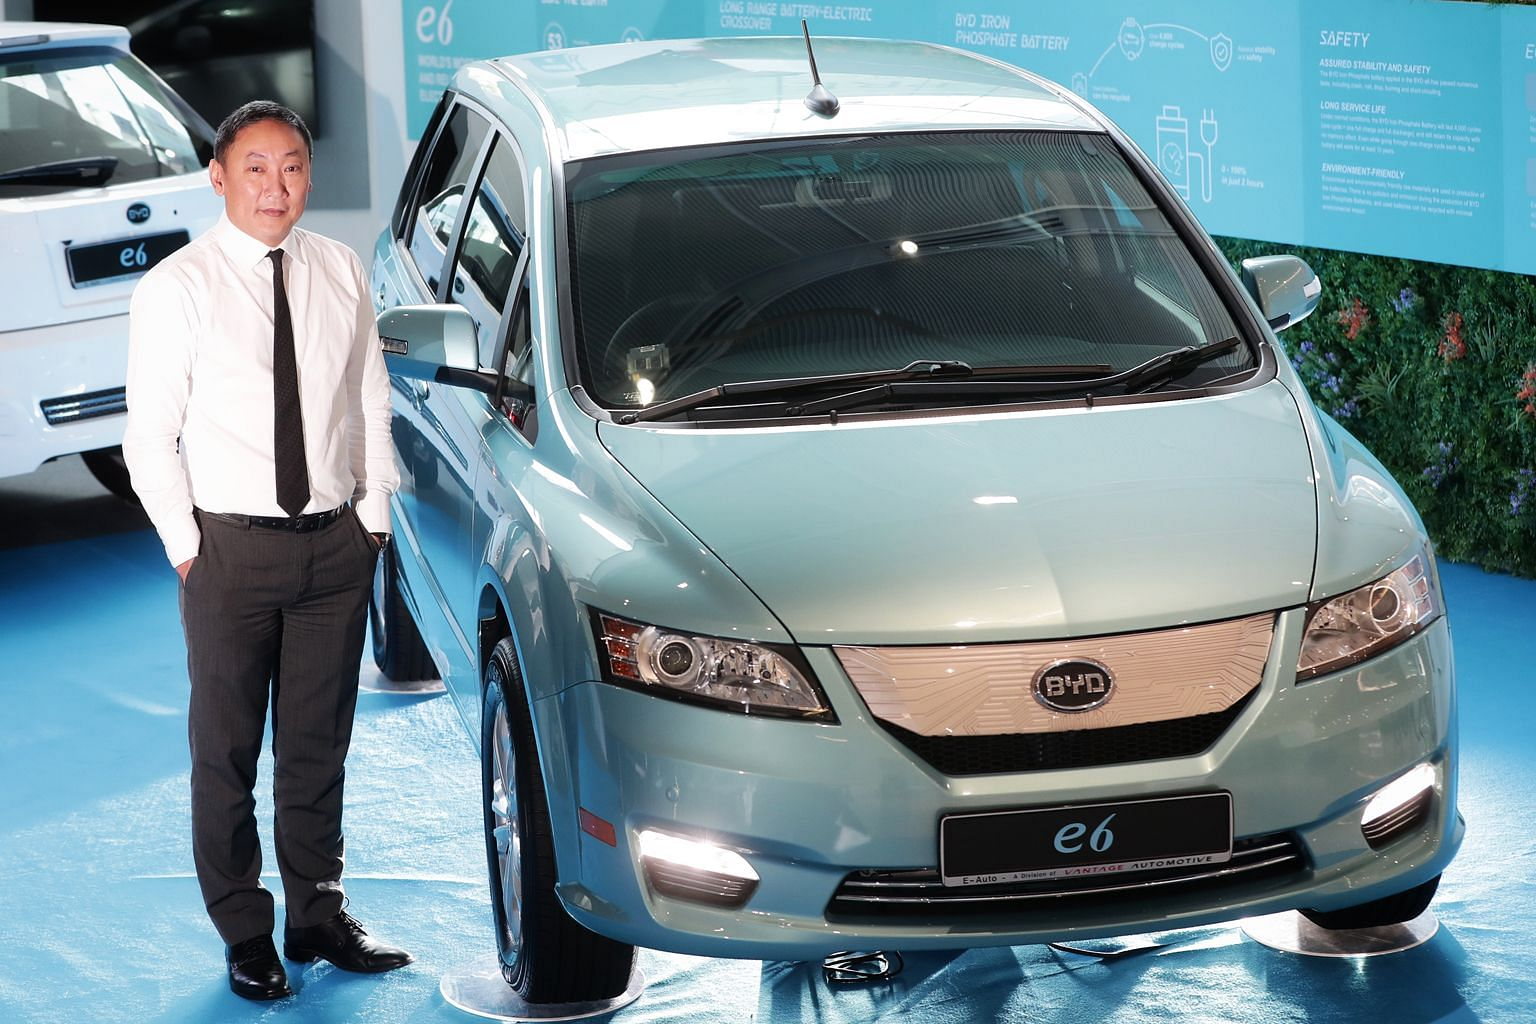 Vantage Automotive's managing director Christopher Chin, with the five-seater BYD E6, which will be priced at around $130,000, making it the least expensive electric car of its size here.